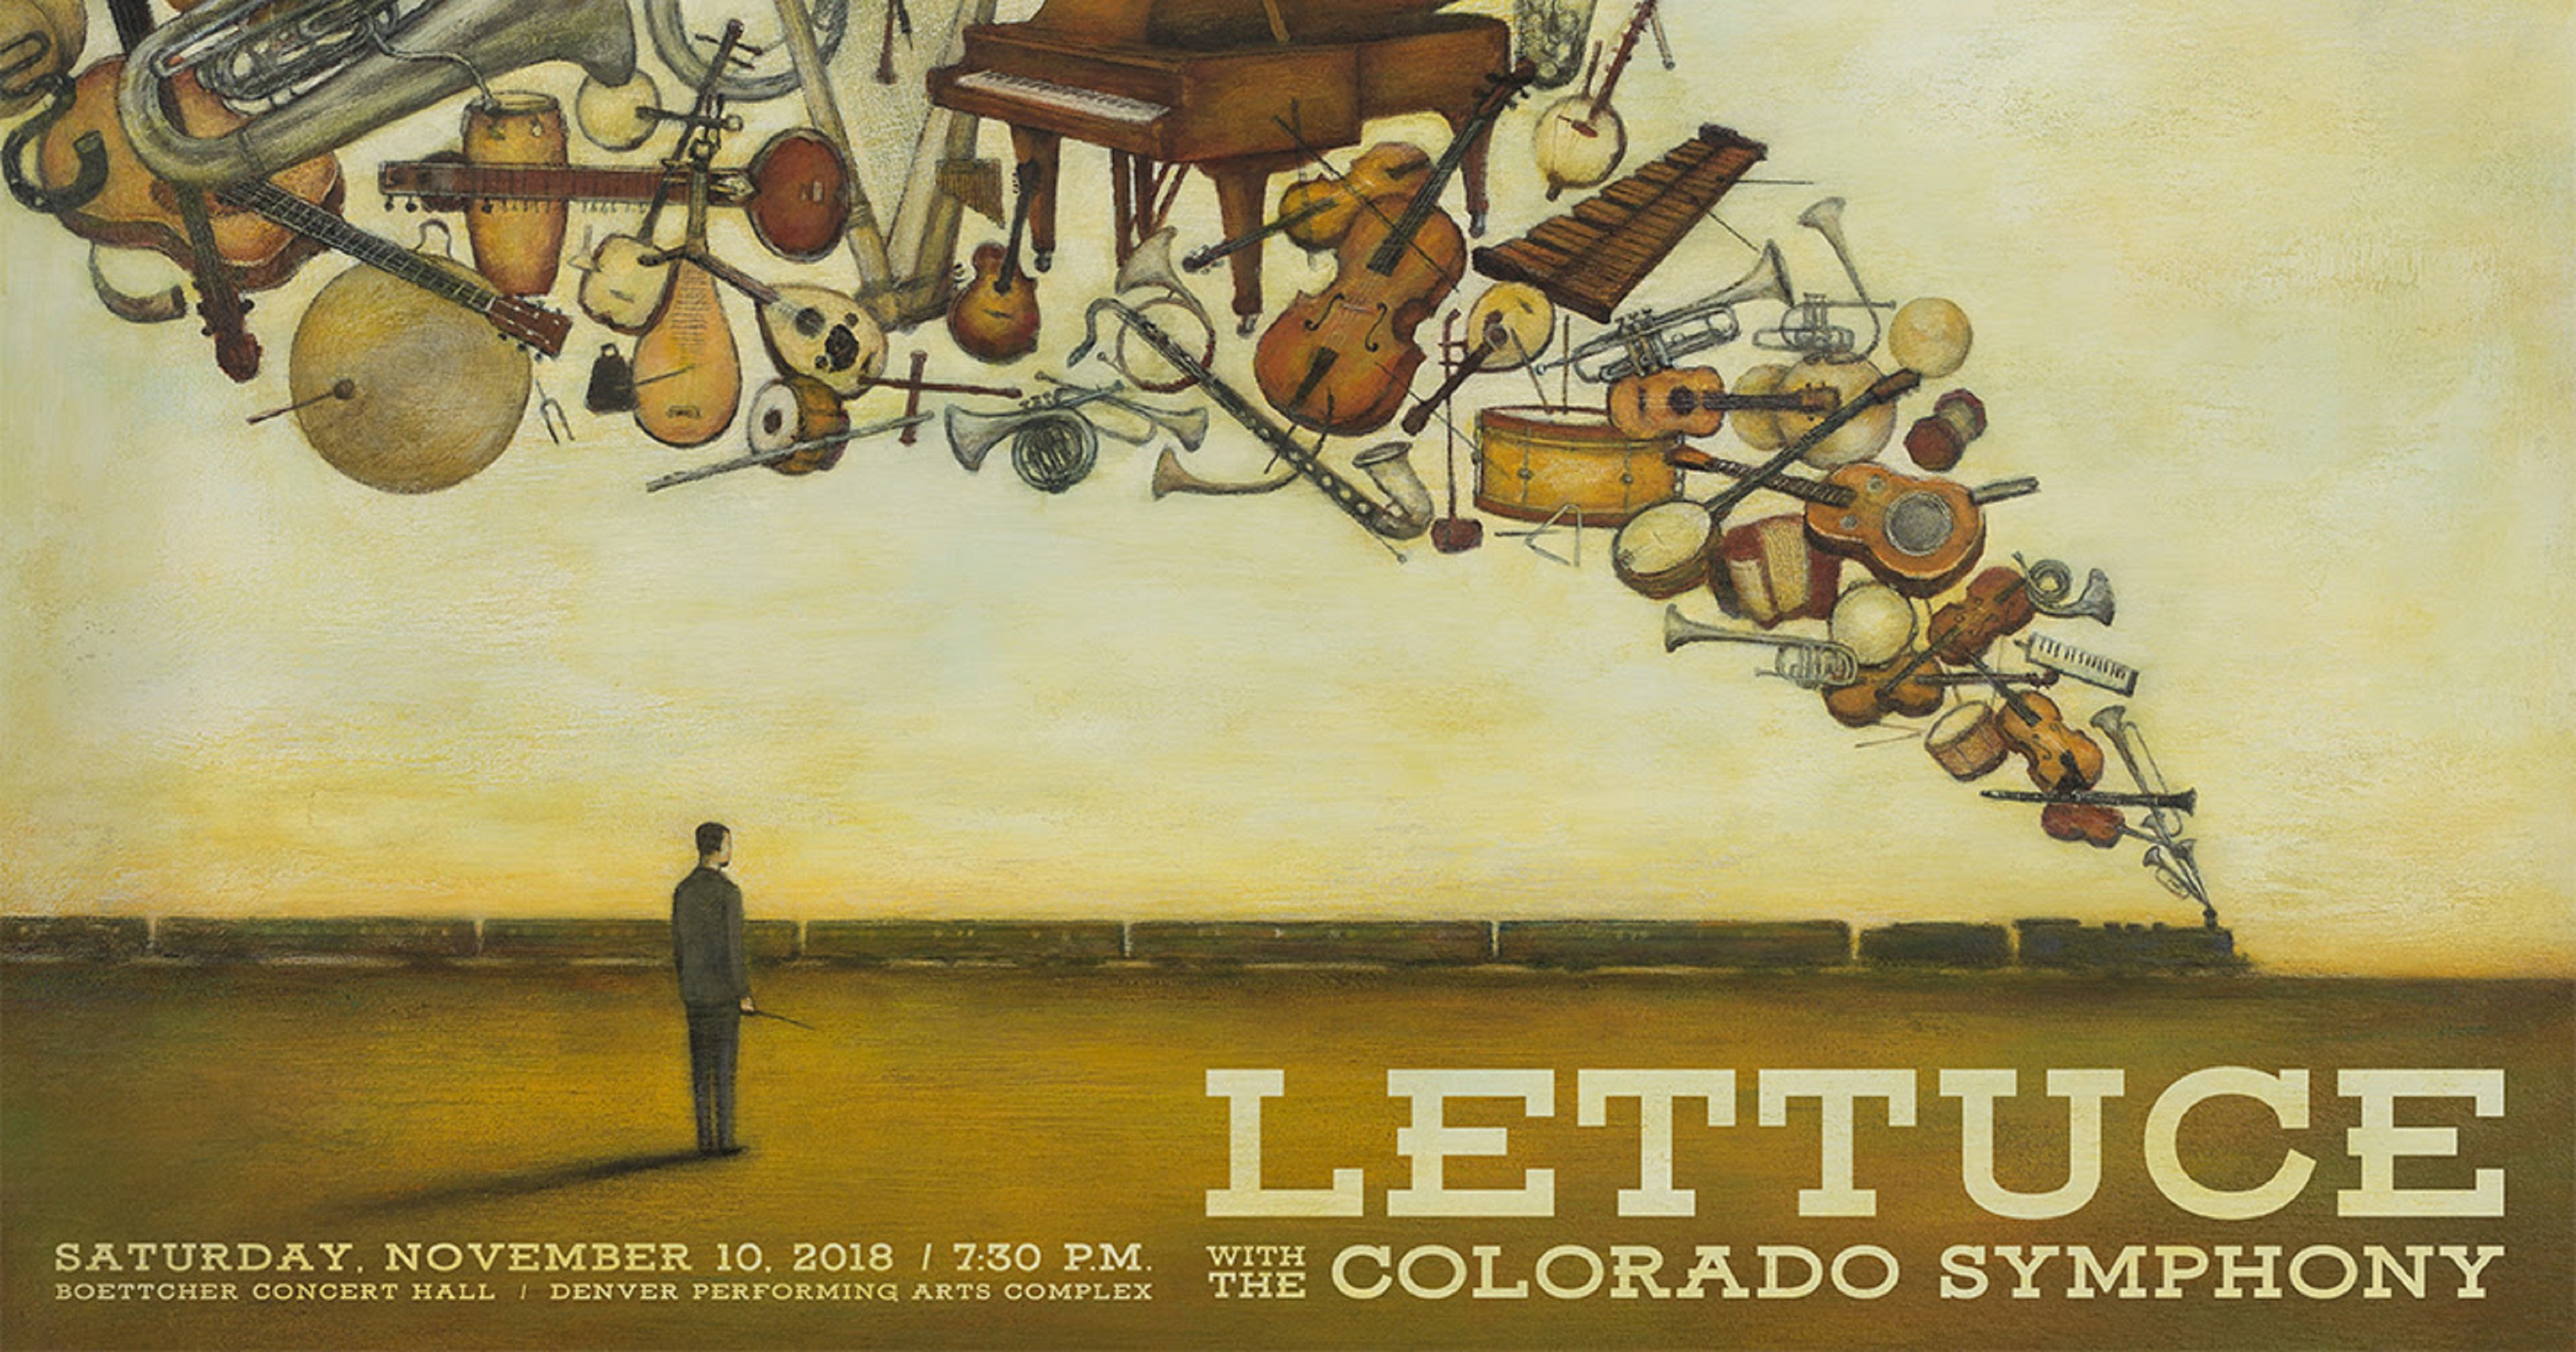 Get Fancy & Funky with Lettuce & The Colorado Symphony